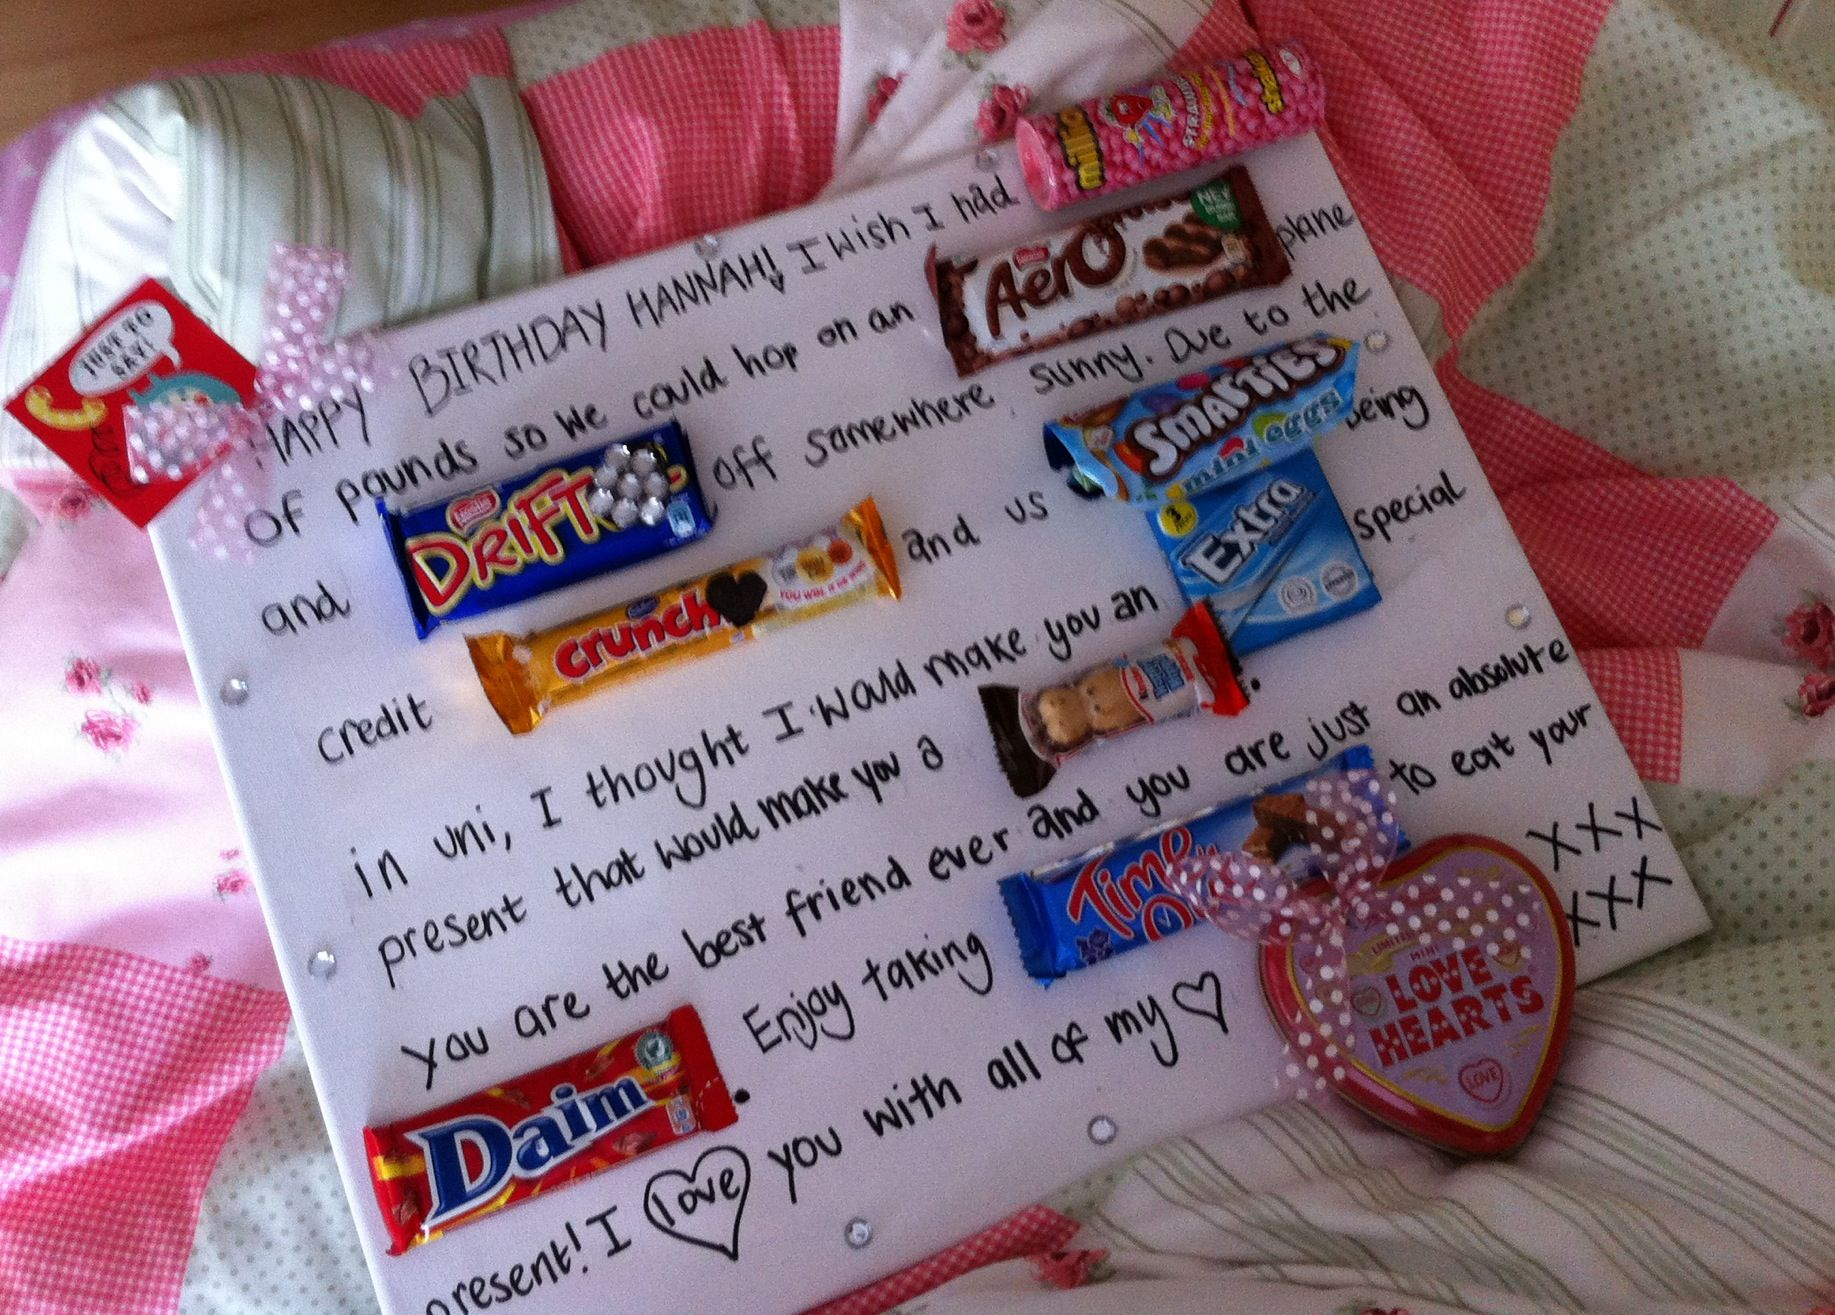 Sweetie Present! Perfect for mums, dads, best friends